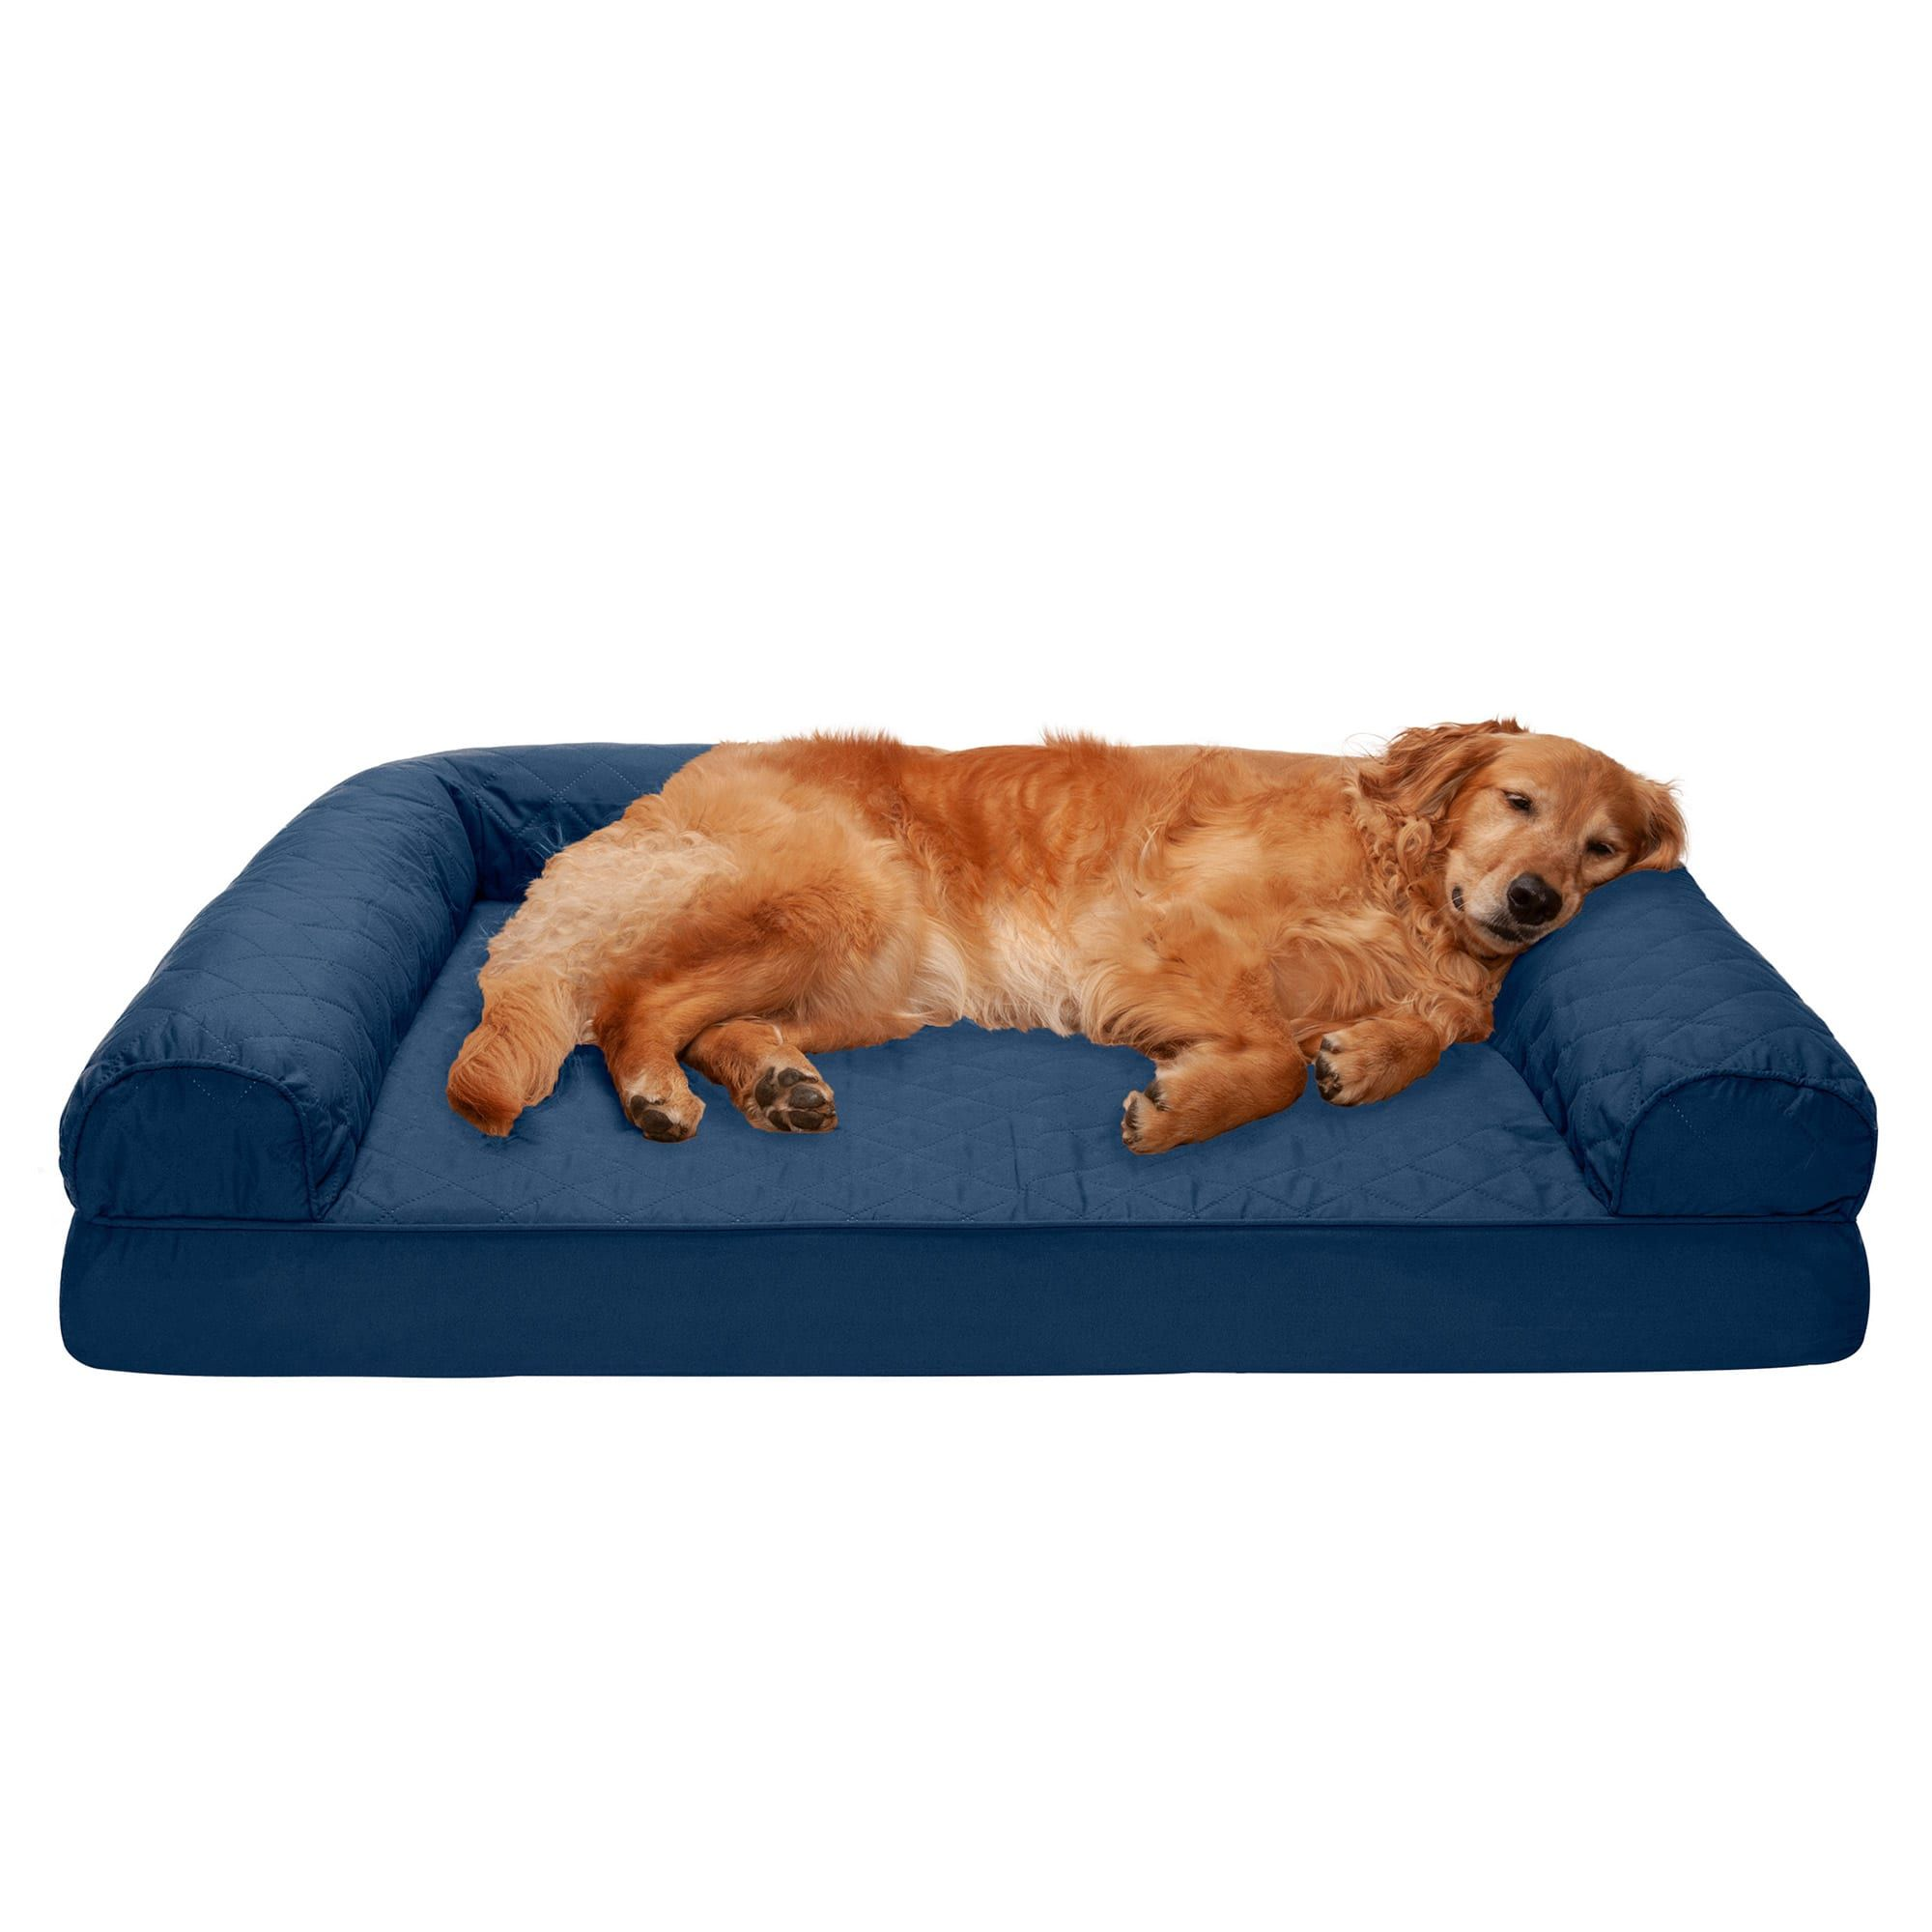 Furhaven Navy Quilted Full Support Sofa Pet Bed 44 L X 35 W X 8 H Petco Pet Sofa Bed Dog Sofa Bed Dog Bed Sizes